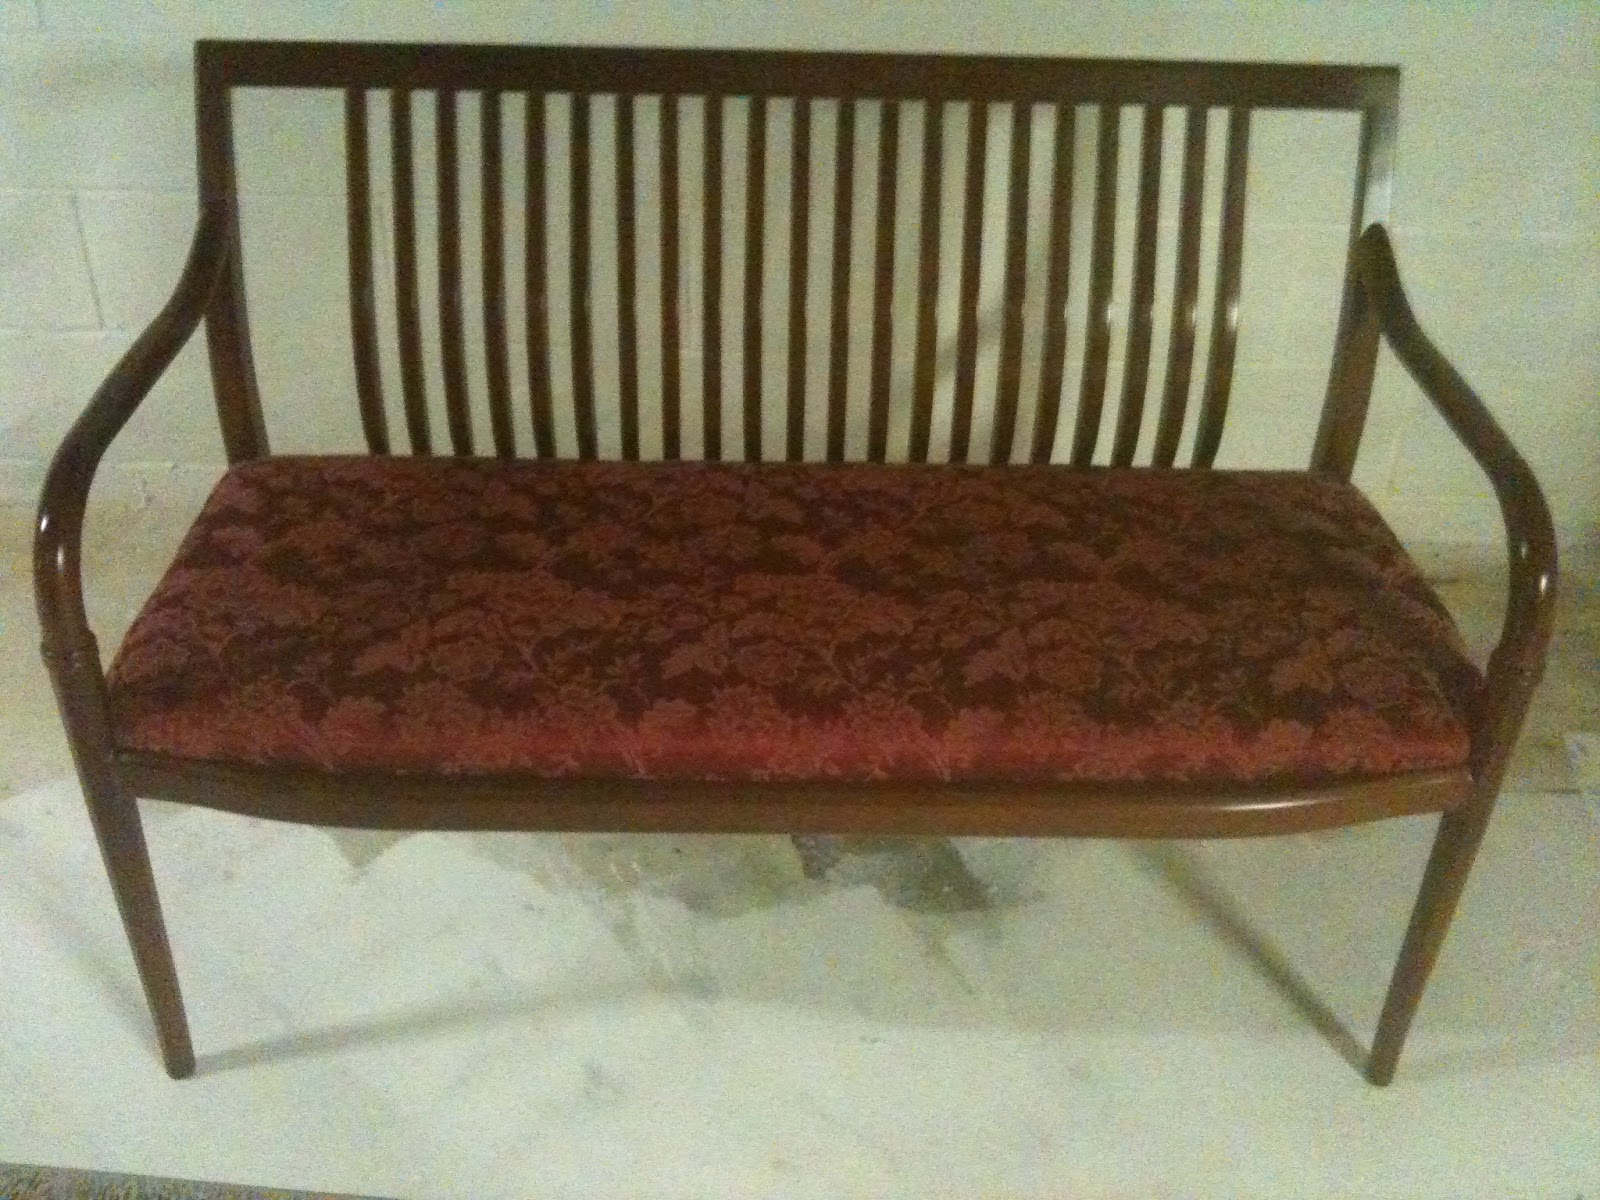 Crafting History Store: Settee - Vintage upholstered Bench ...